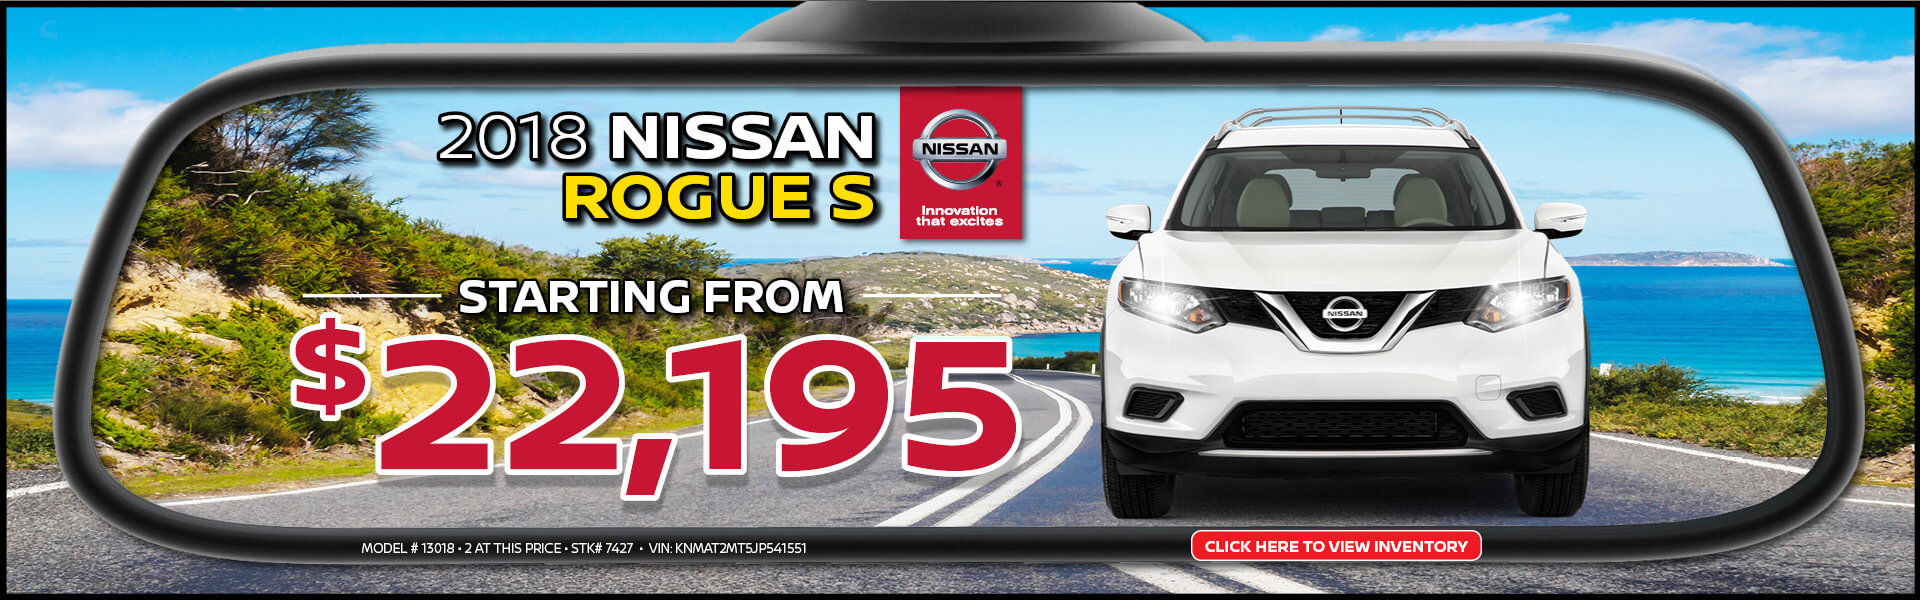 Nissan Rogue $22,195 Purchase